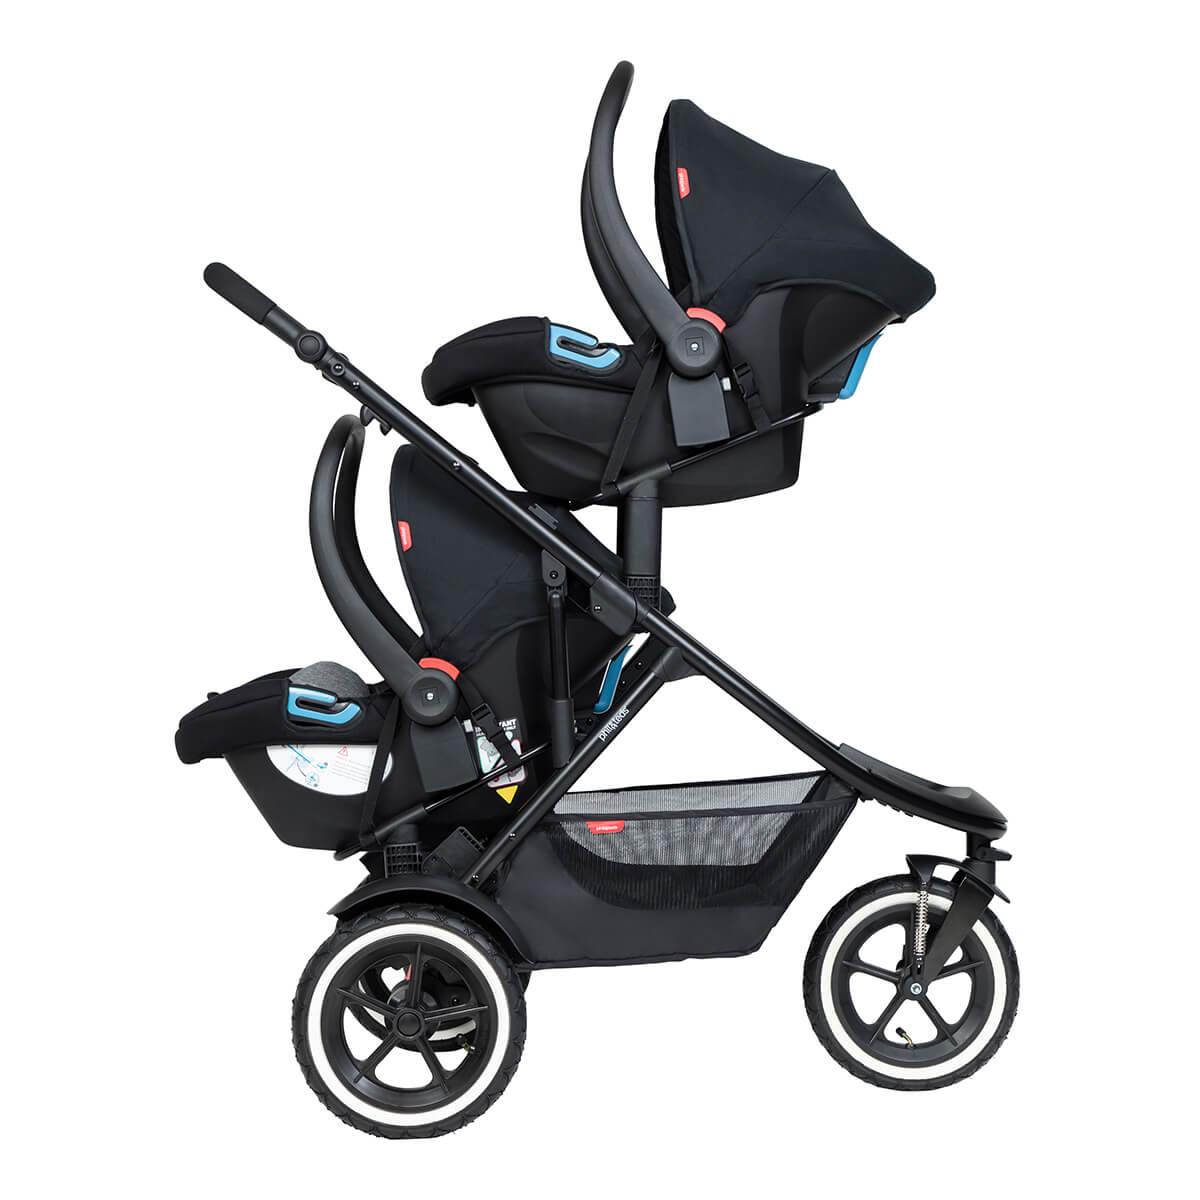 https://cdn.accentuate.io/4513462255712/19440099983544/philteds-sport-buggy-with-double-alpha-travel-system-v1626486498870.jpg?1200x1200